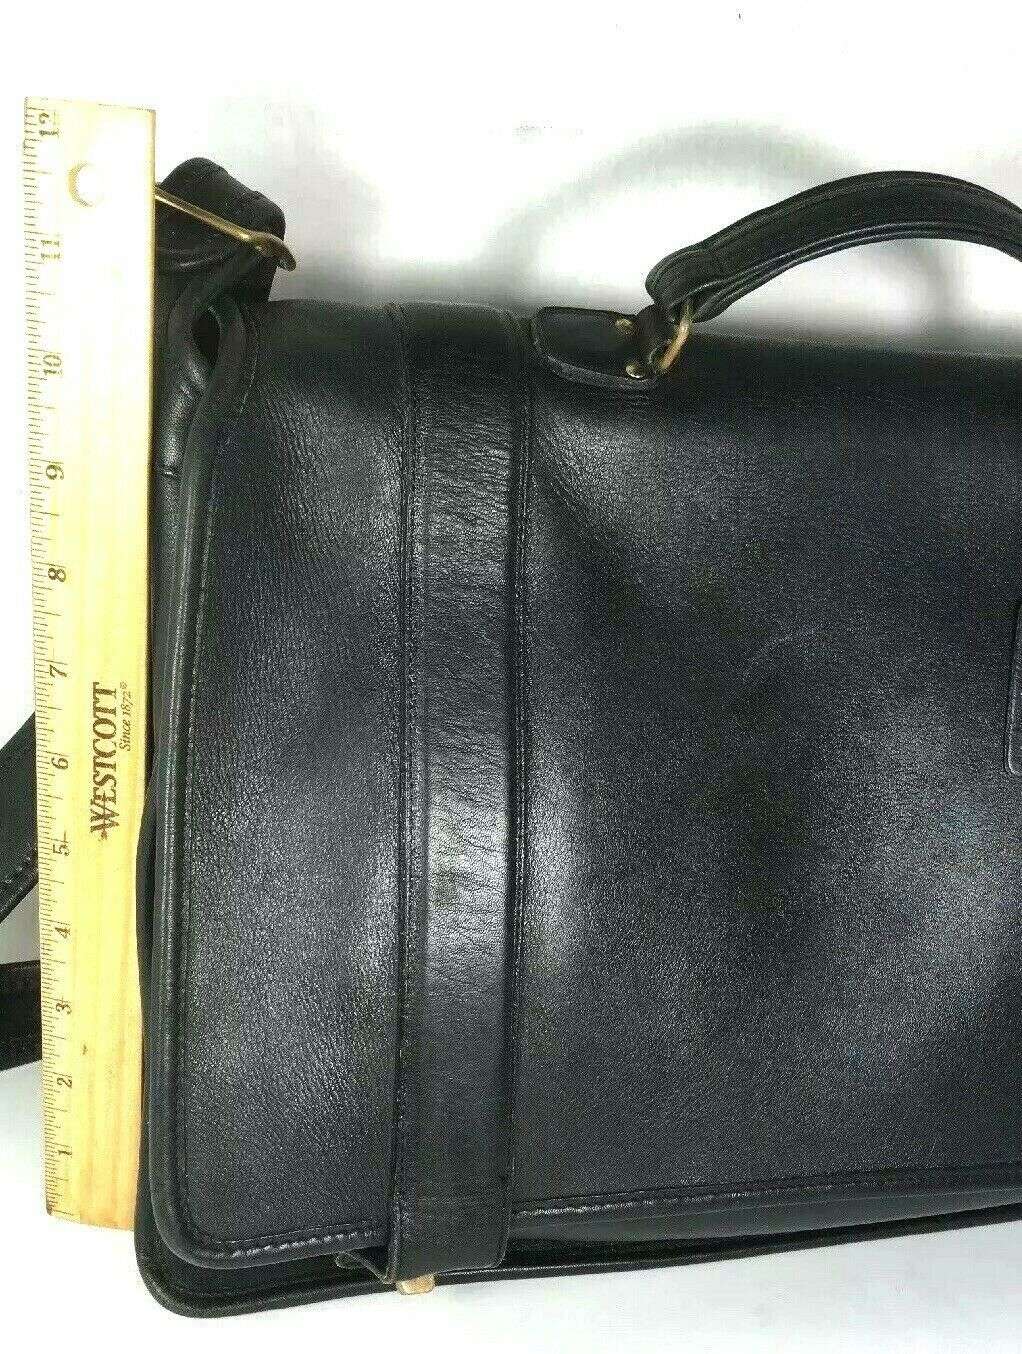 Coach Vintage Black Leather Briefcase Messenger Bag with Strap - Made In USA